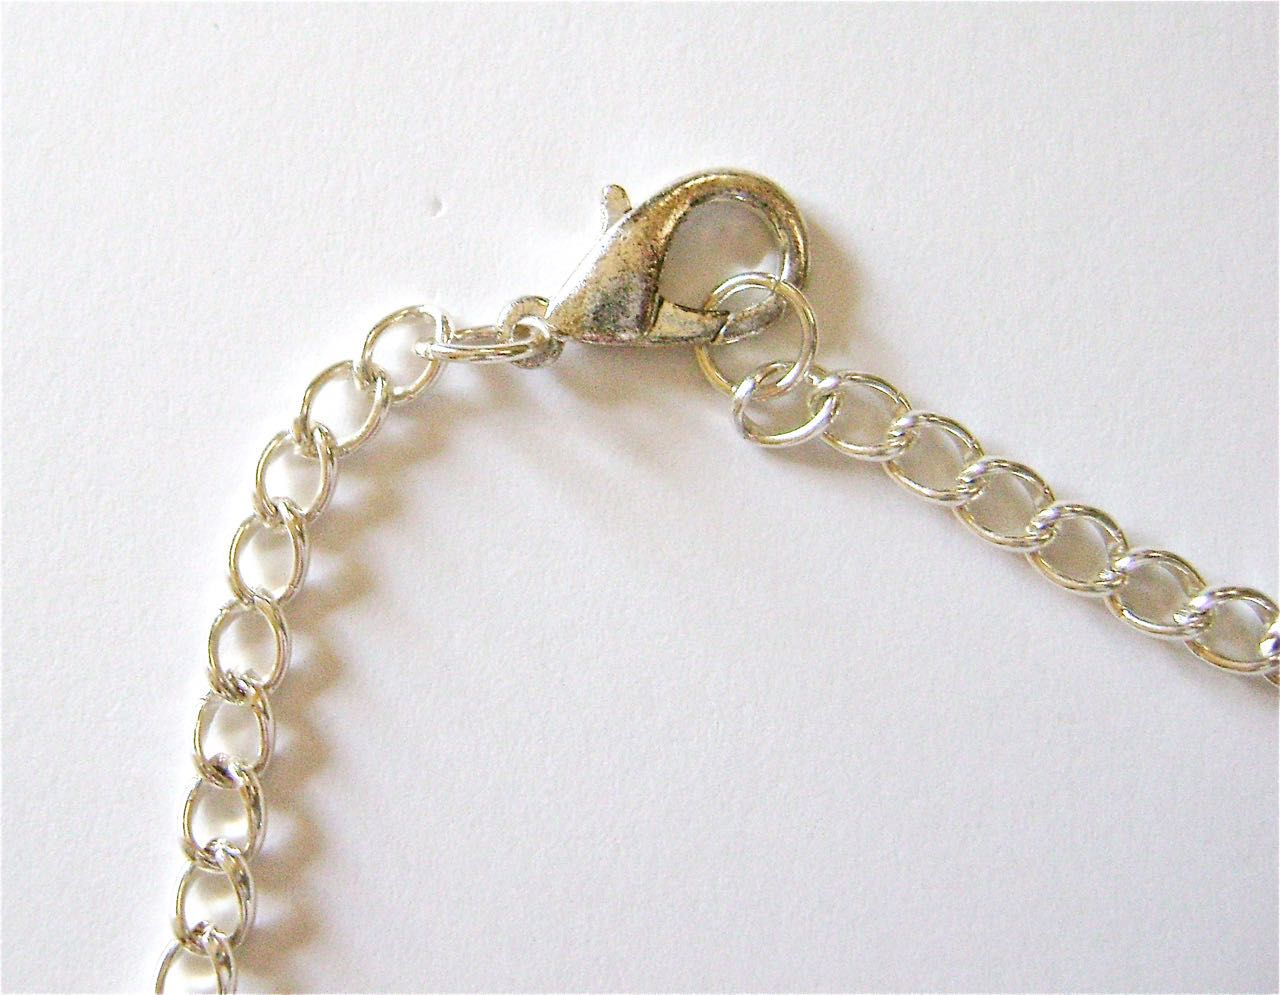 """step 15 - Attach a 5.5"""" length of chain to the hook of each clam shell. Attach a lobster clasp to the end of one chain and a jump ring to the other."""